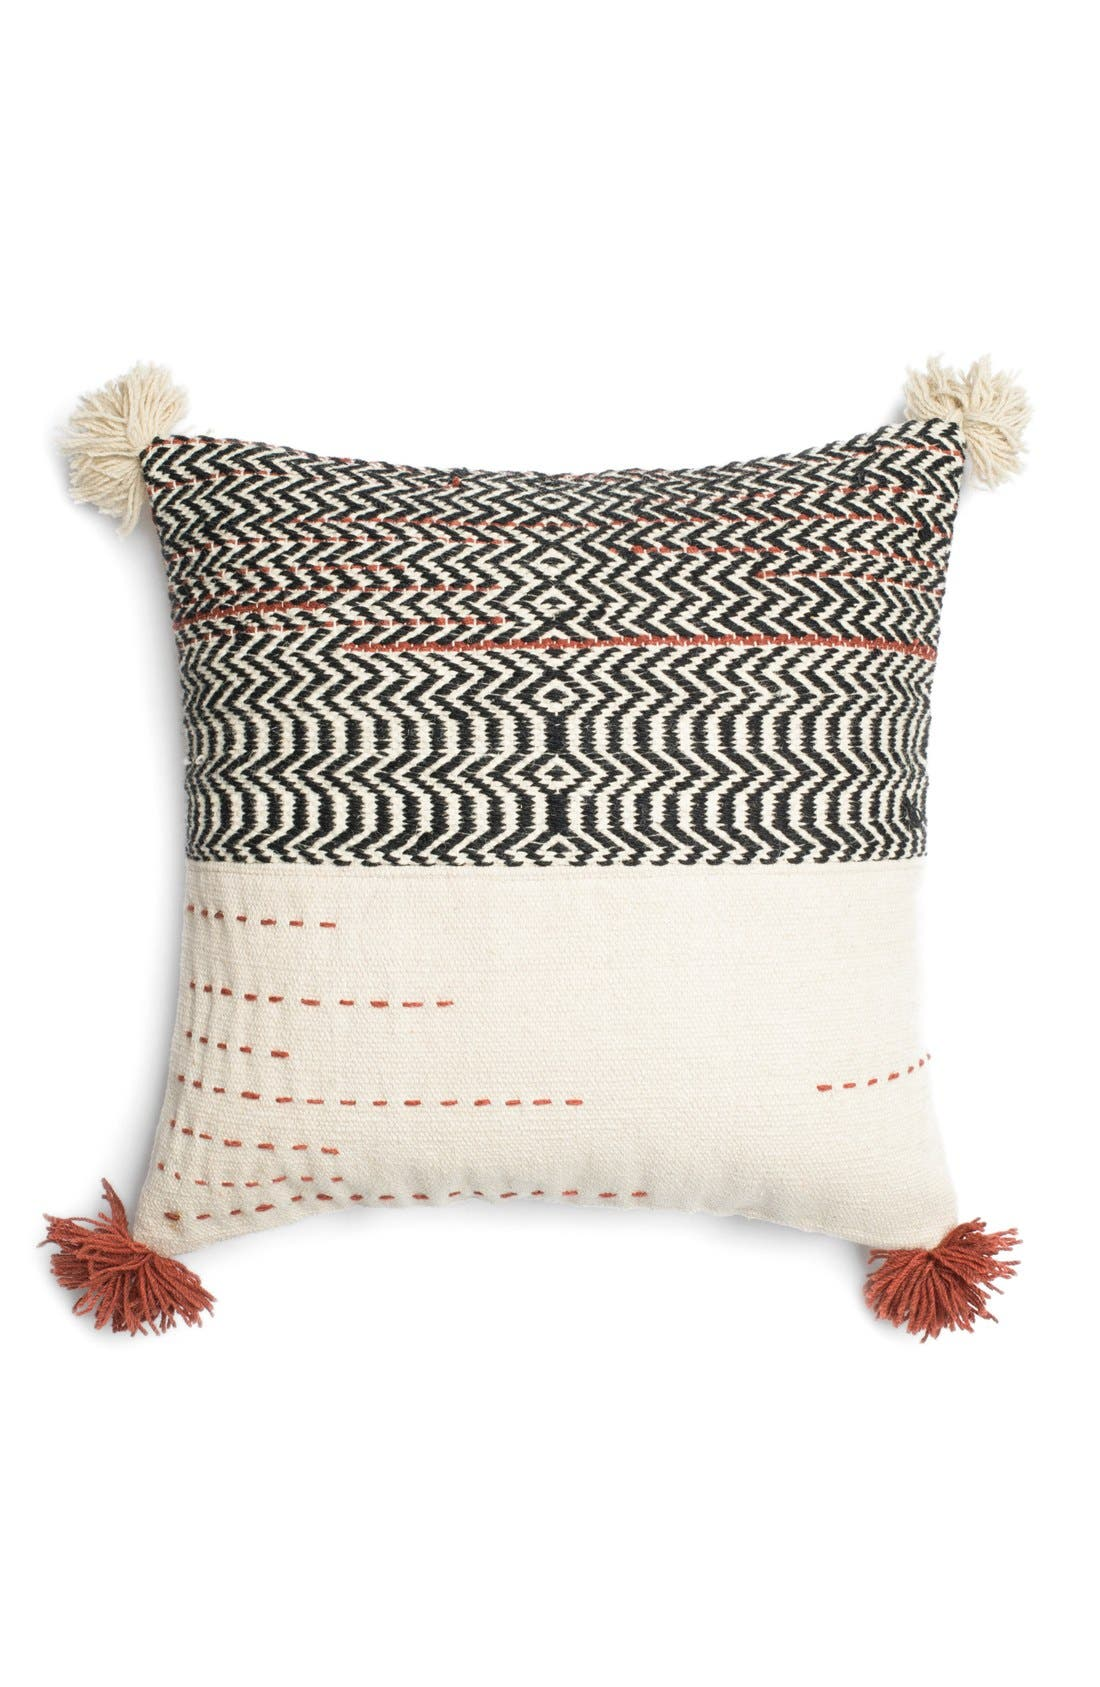 Alternate Image 1 Selected - Loloi Woven Wool & Cotton Accent Pillow